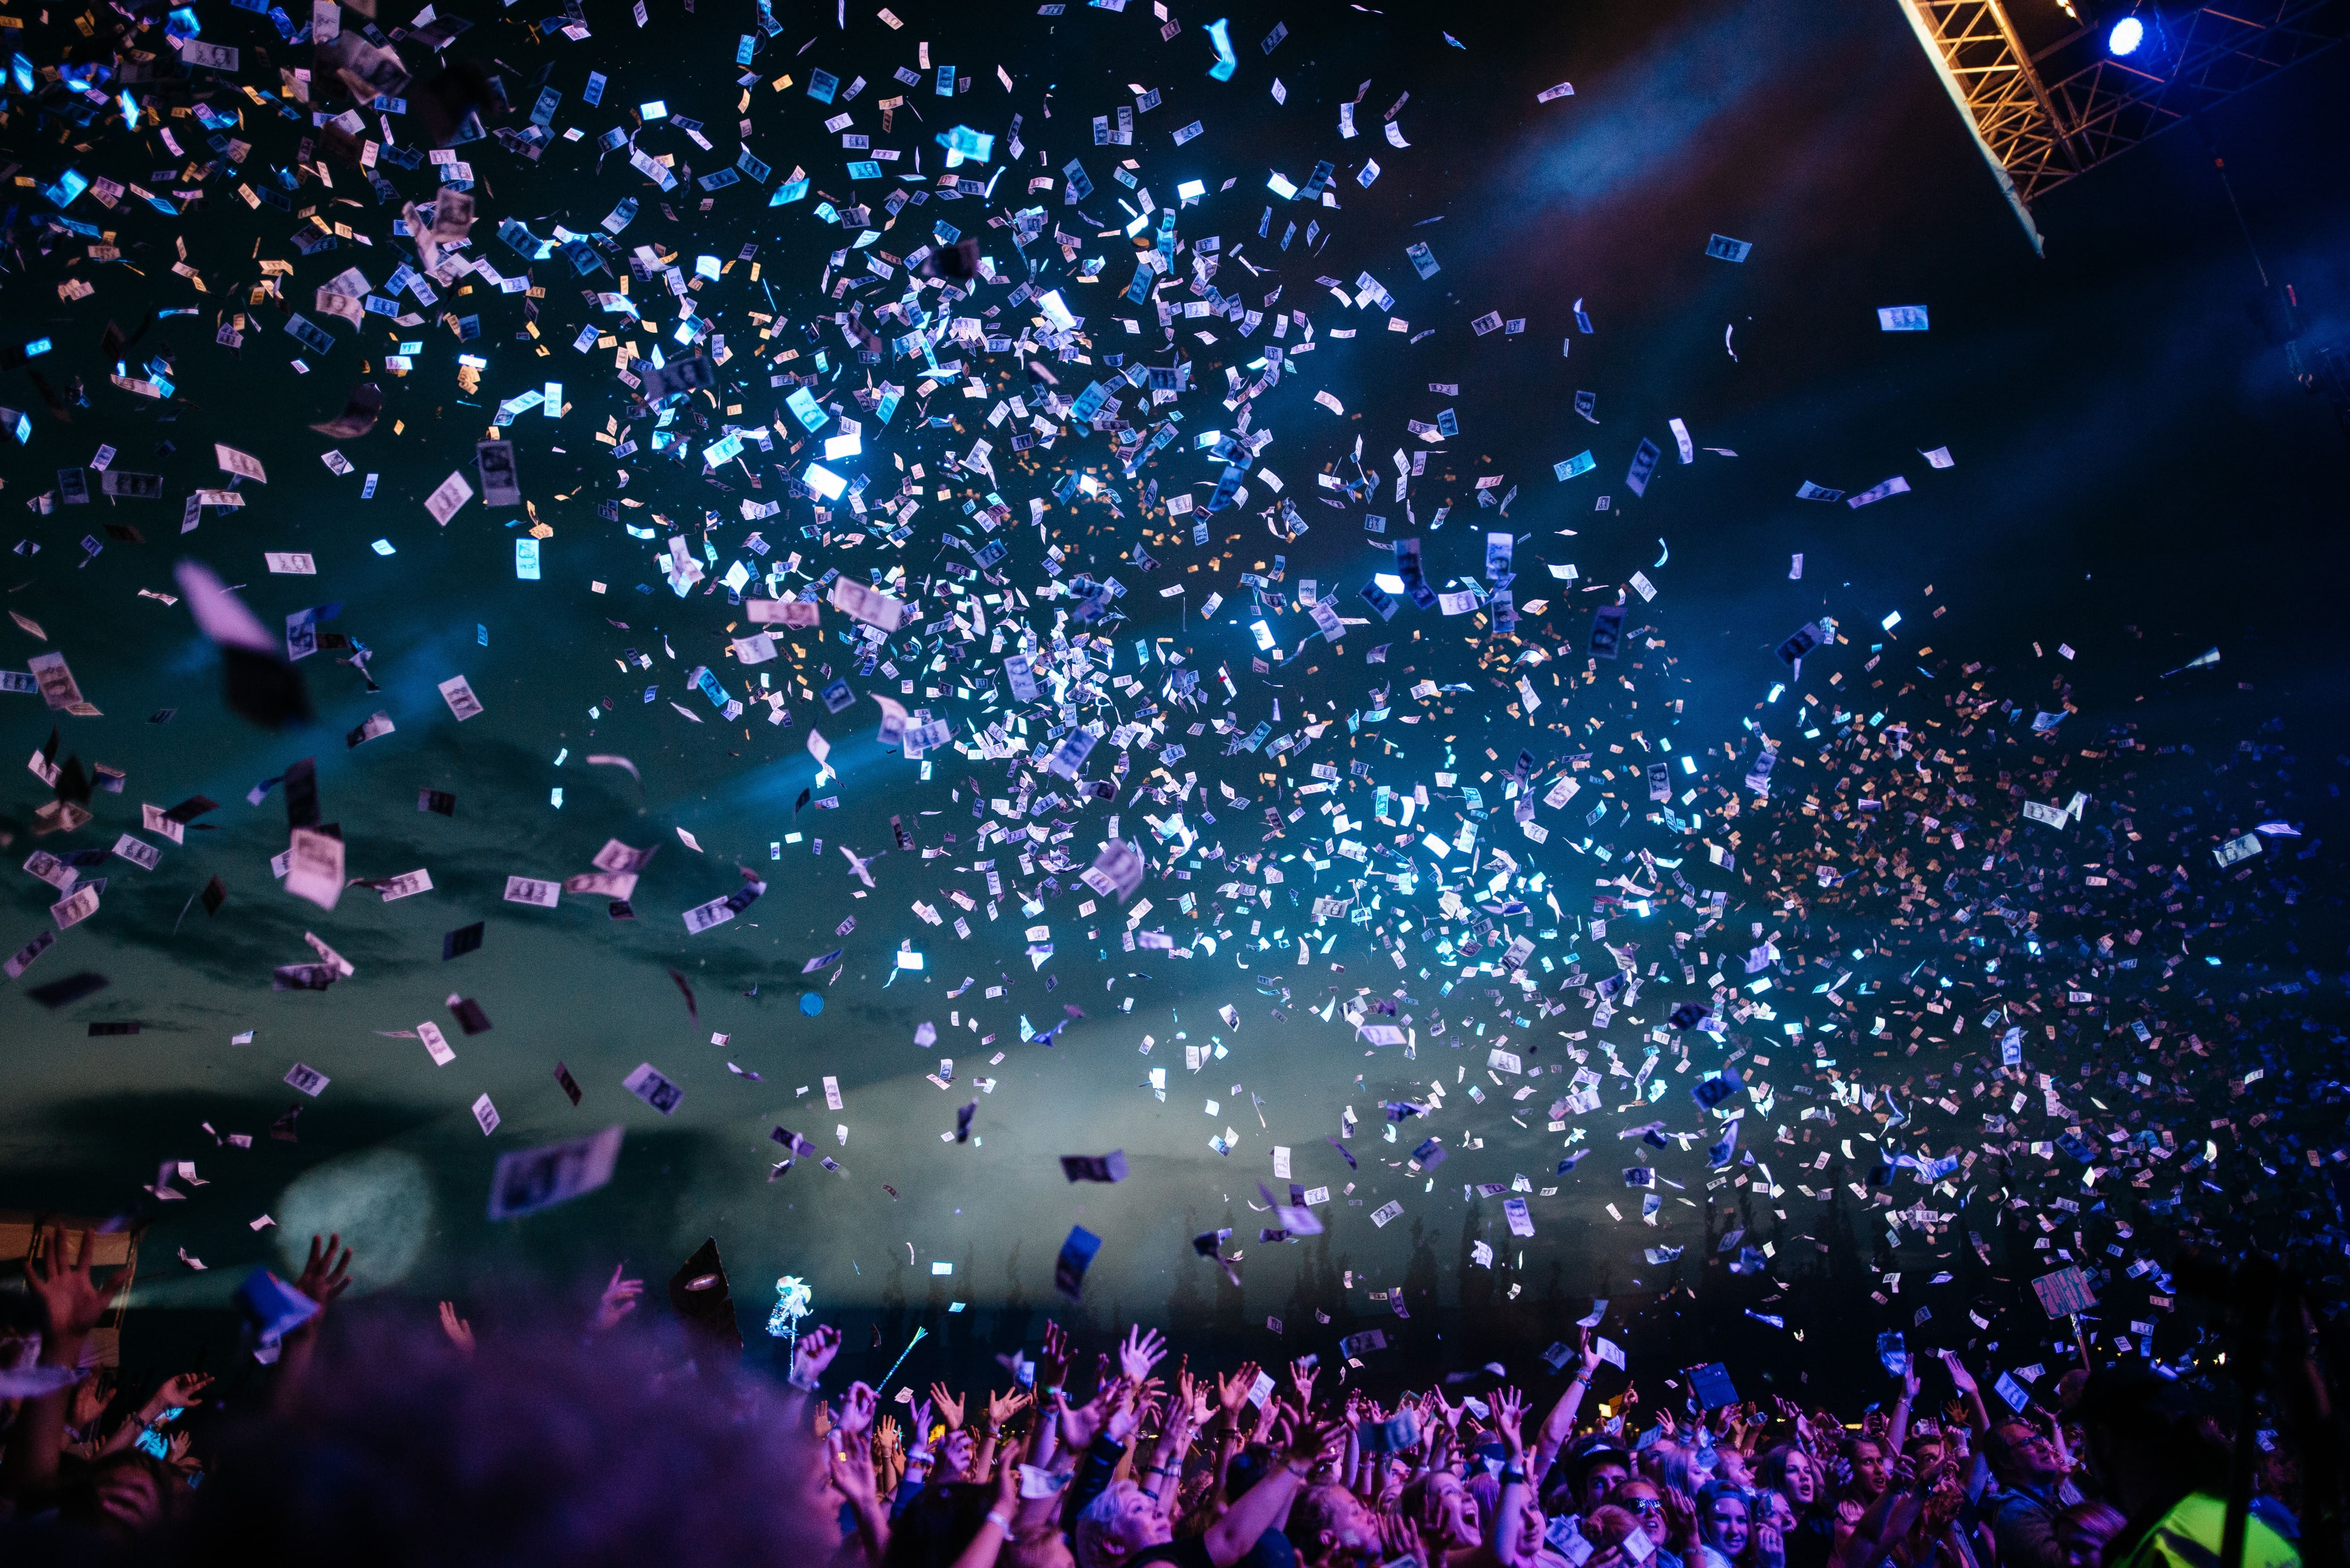 Confetti Flying Over an Event